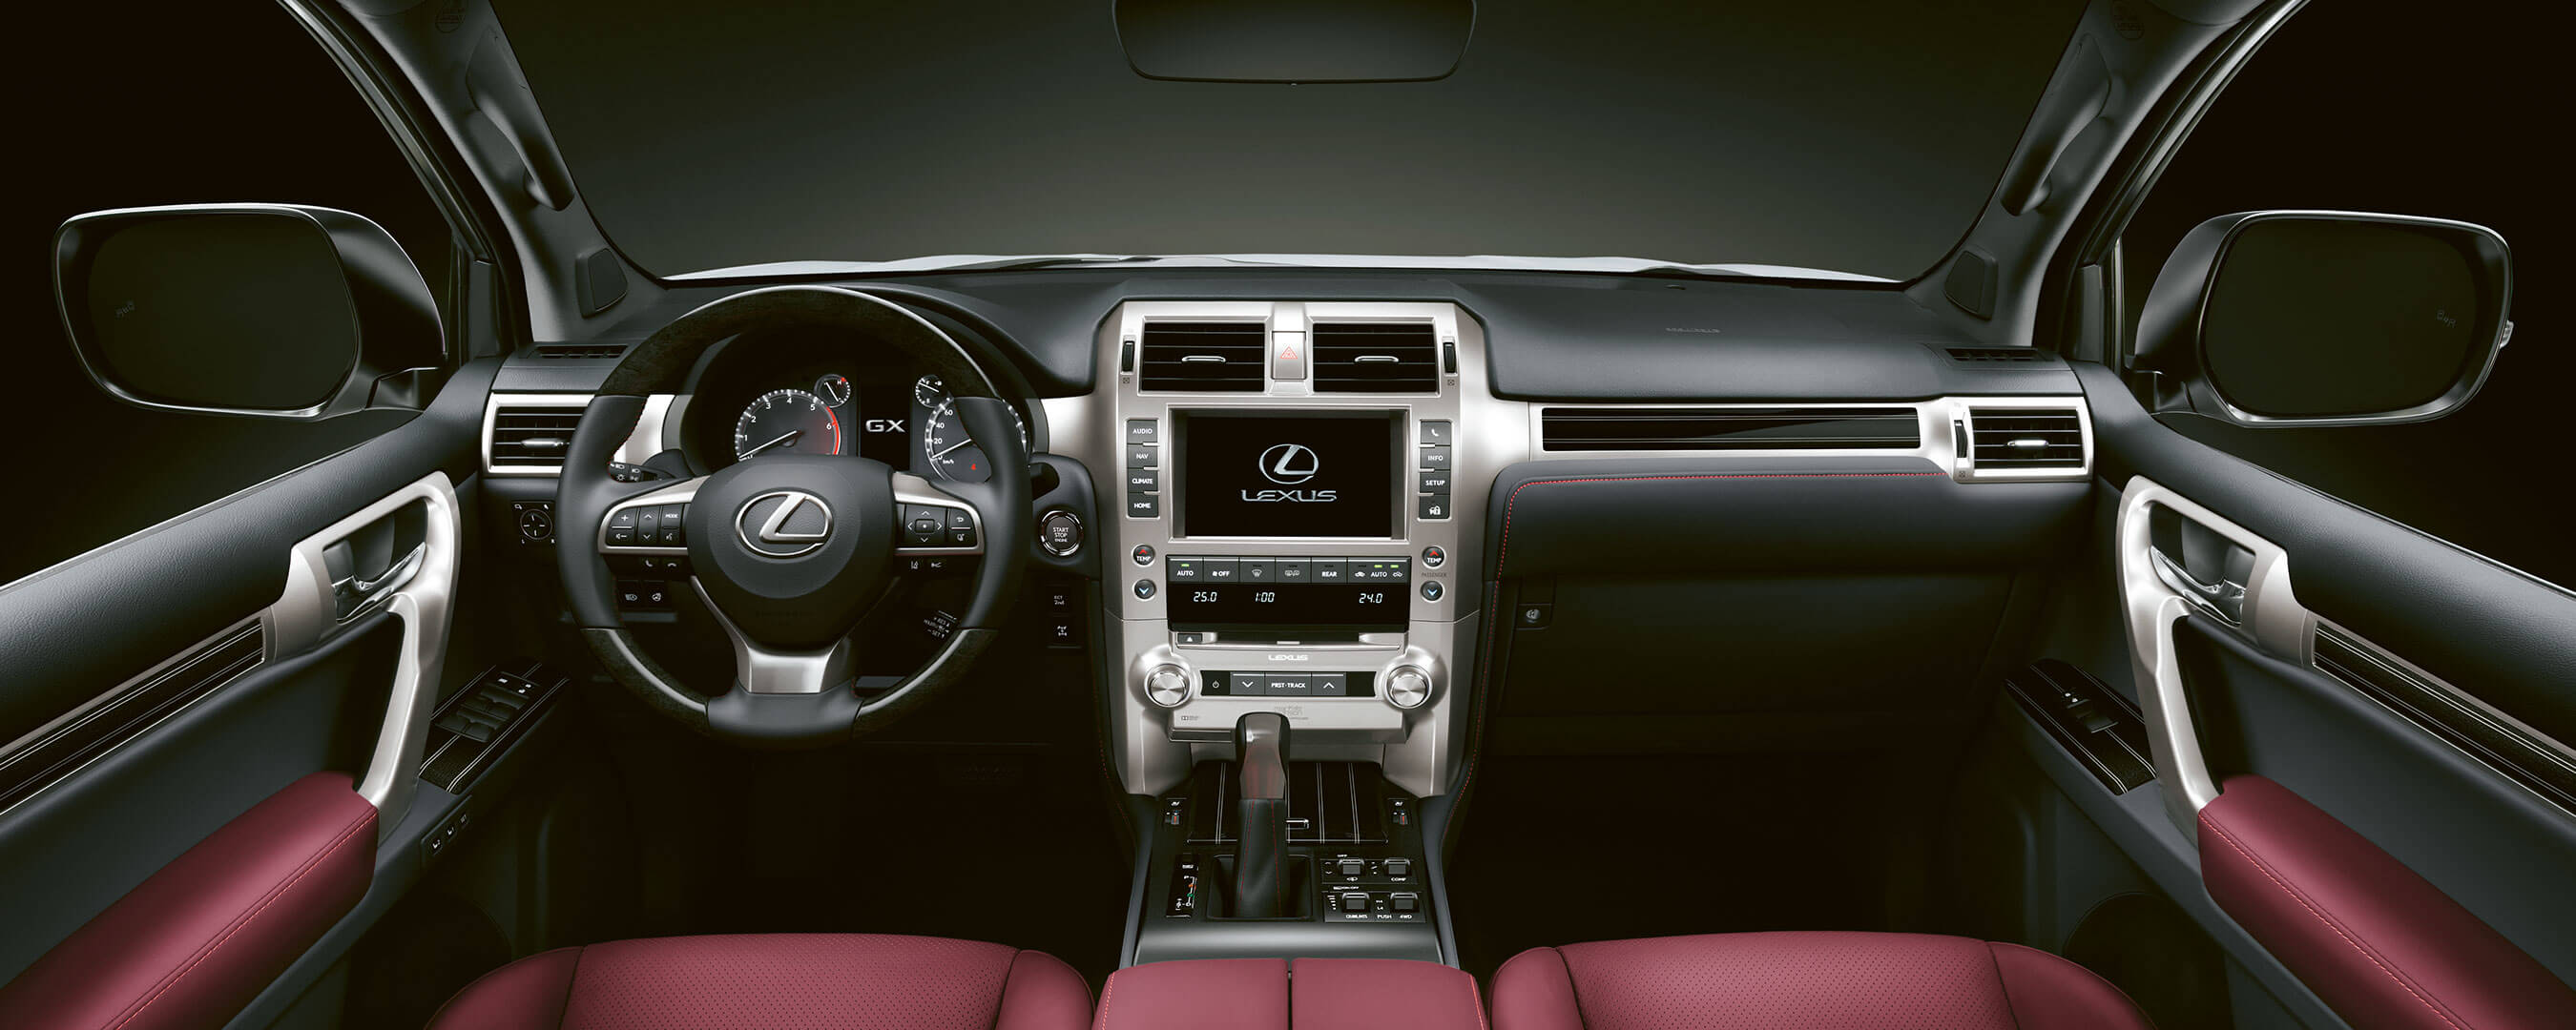 2019 lexus gx experience interior front